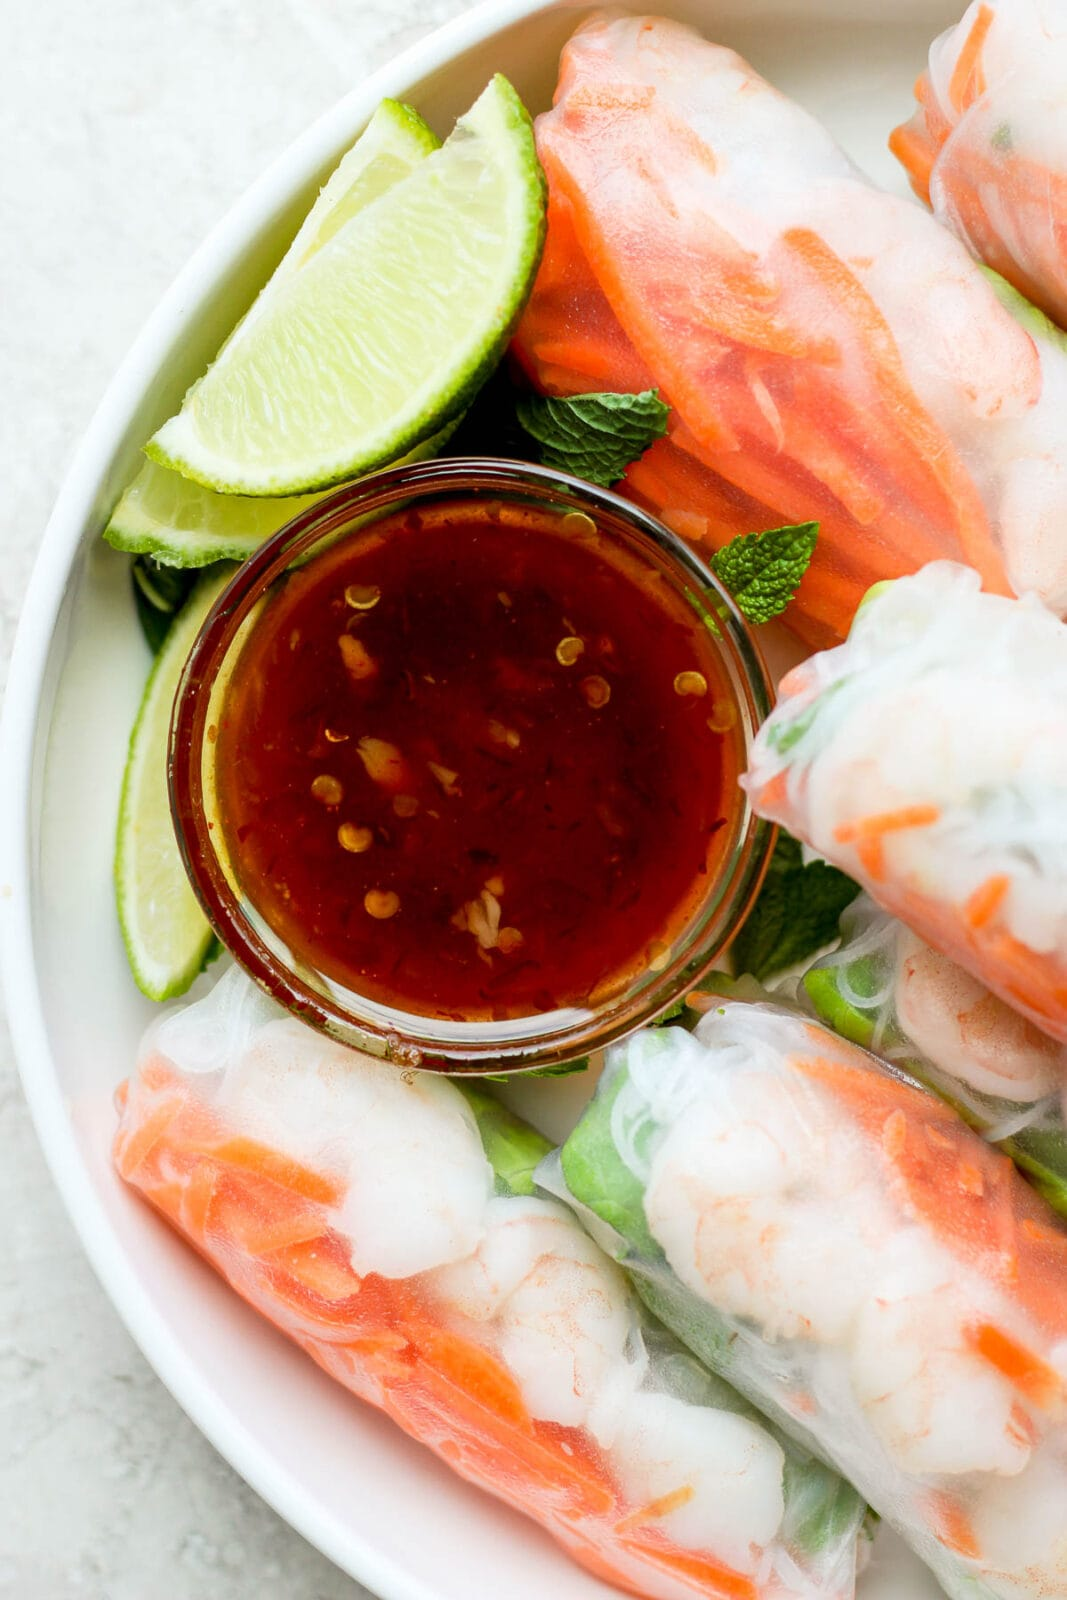 Spring roll dipping sauce in a small dish surrounded by fresh shrimp spring rolls.